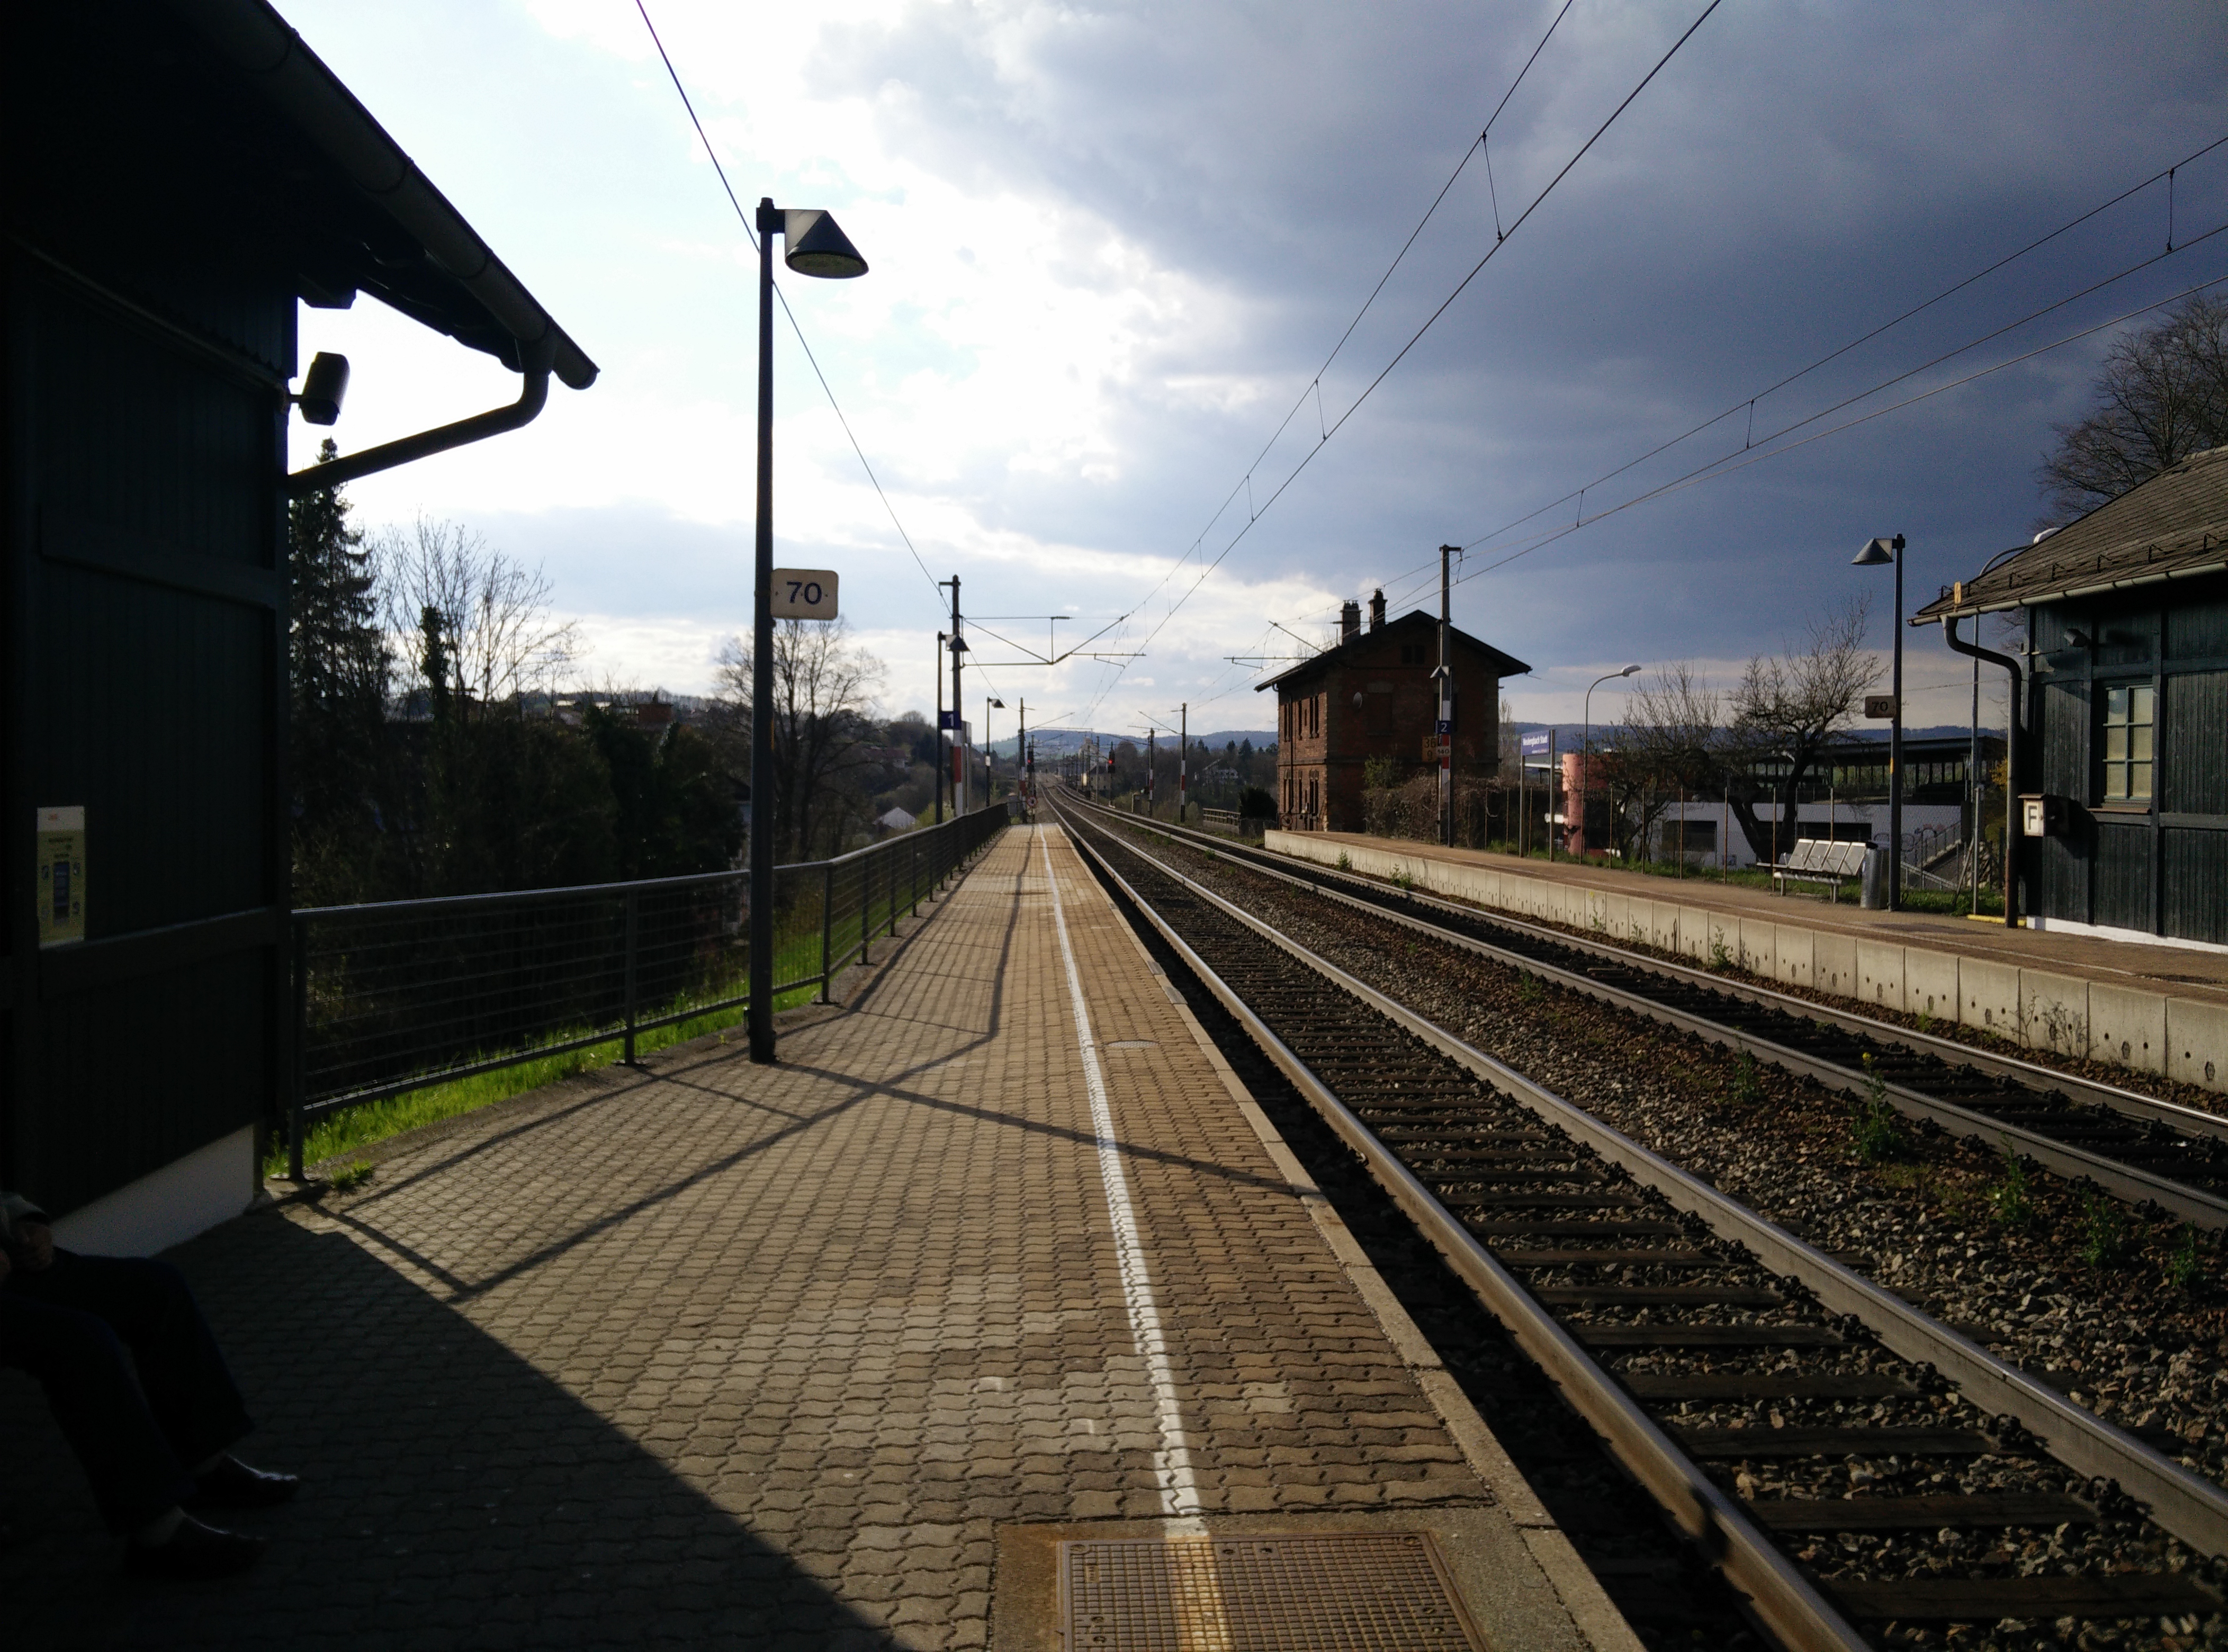 A train station in Upper Austria. It, too, would prefer to read interesting short stuff on blogs.